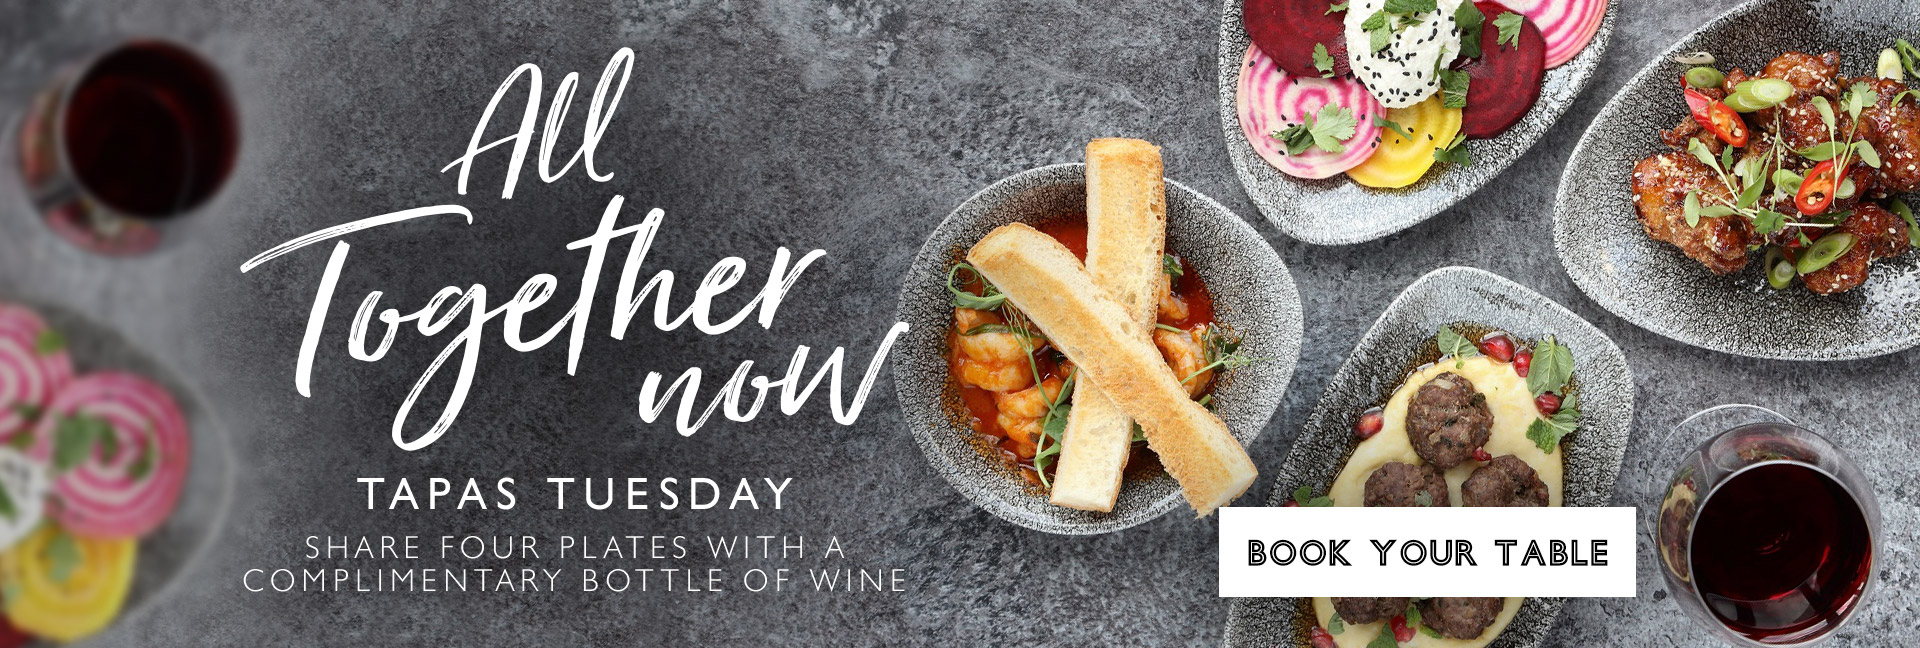 Tapas Tuesday at All Bar One Sutton - Book now